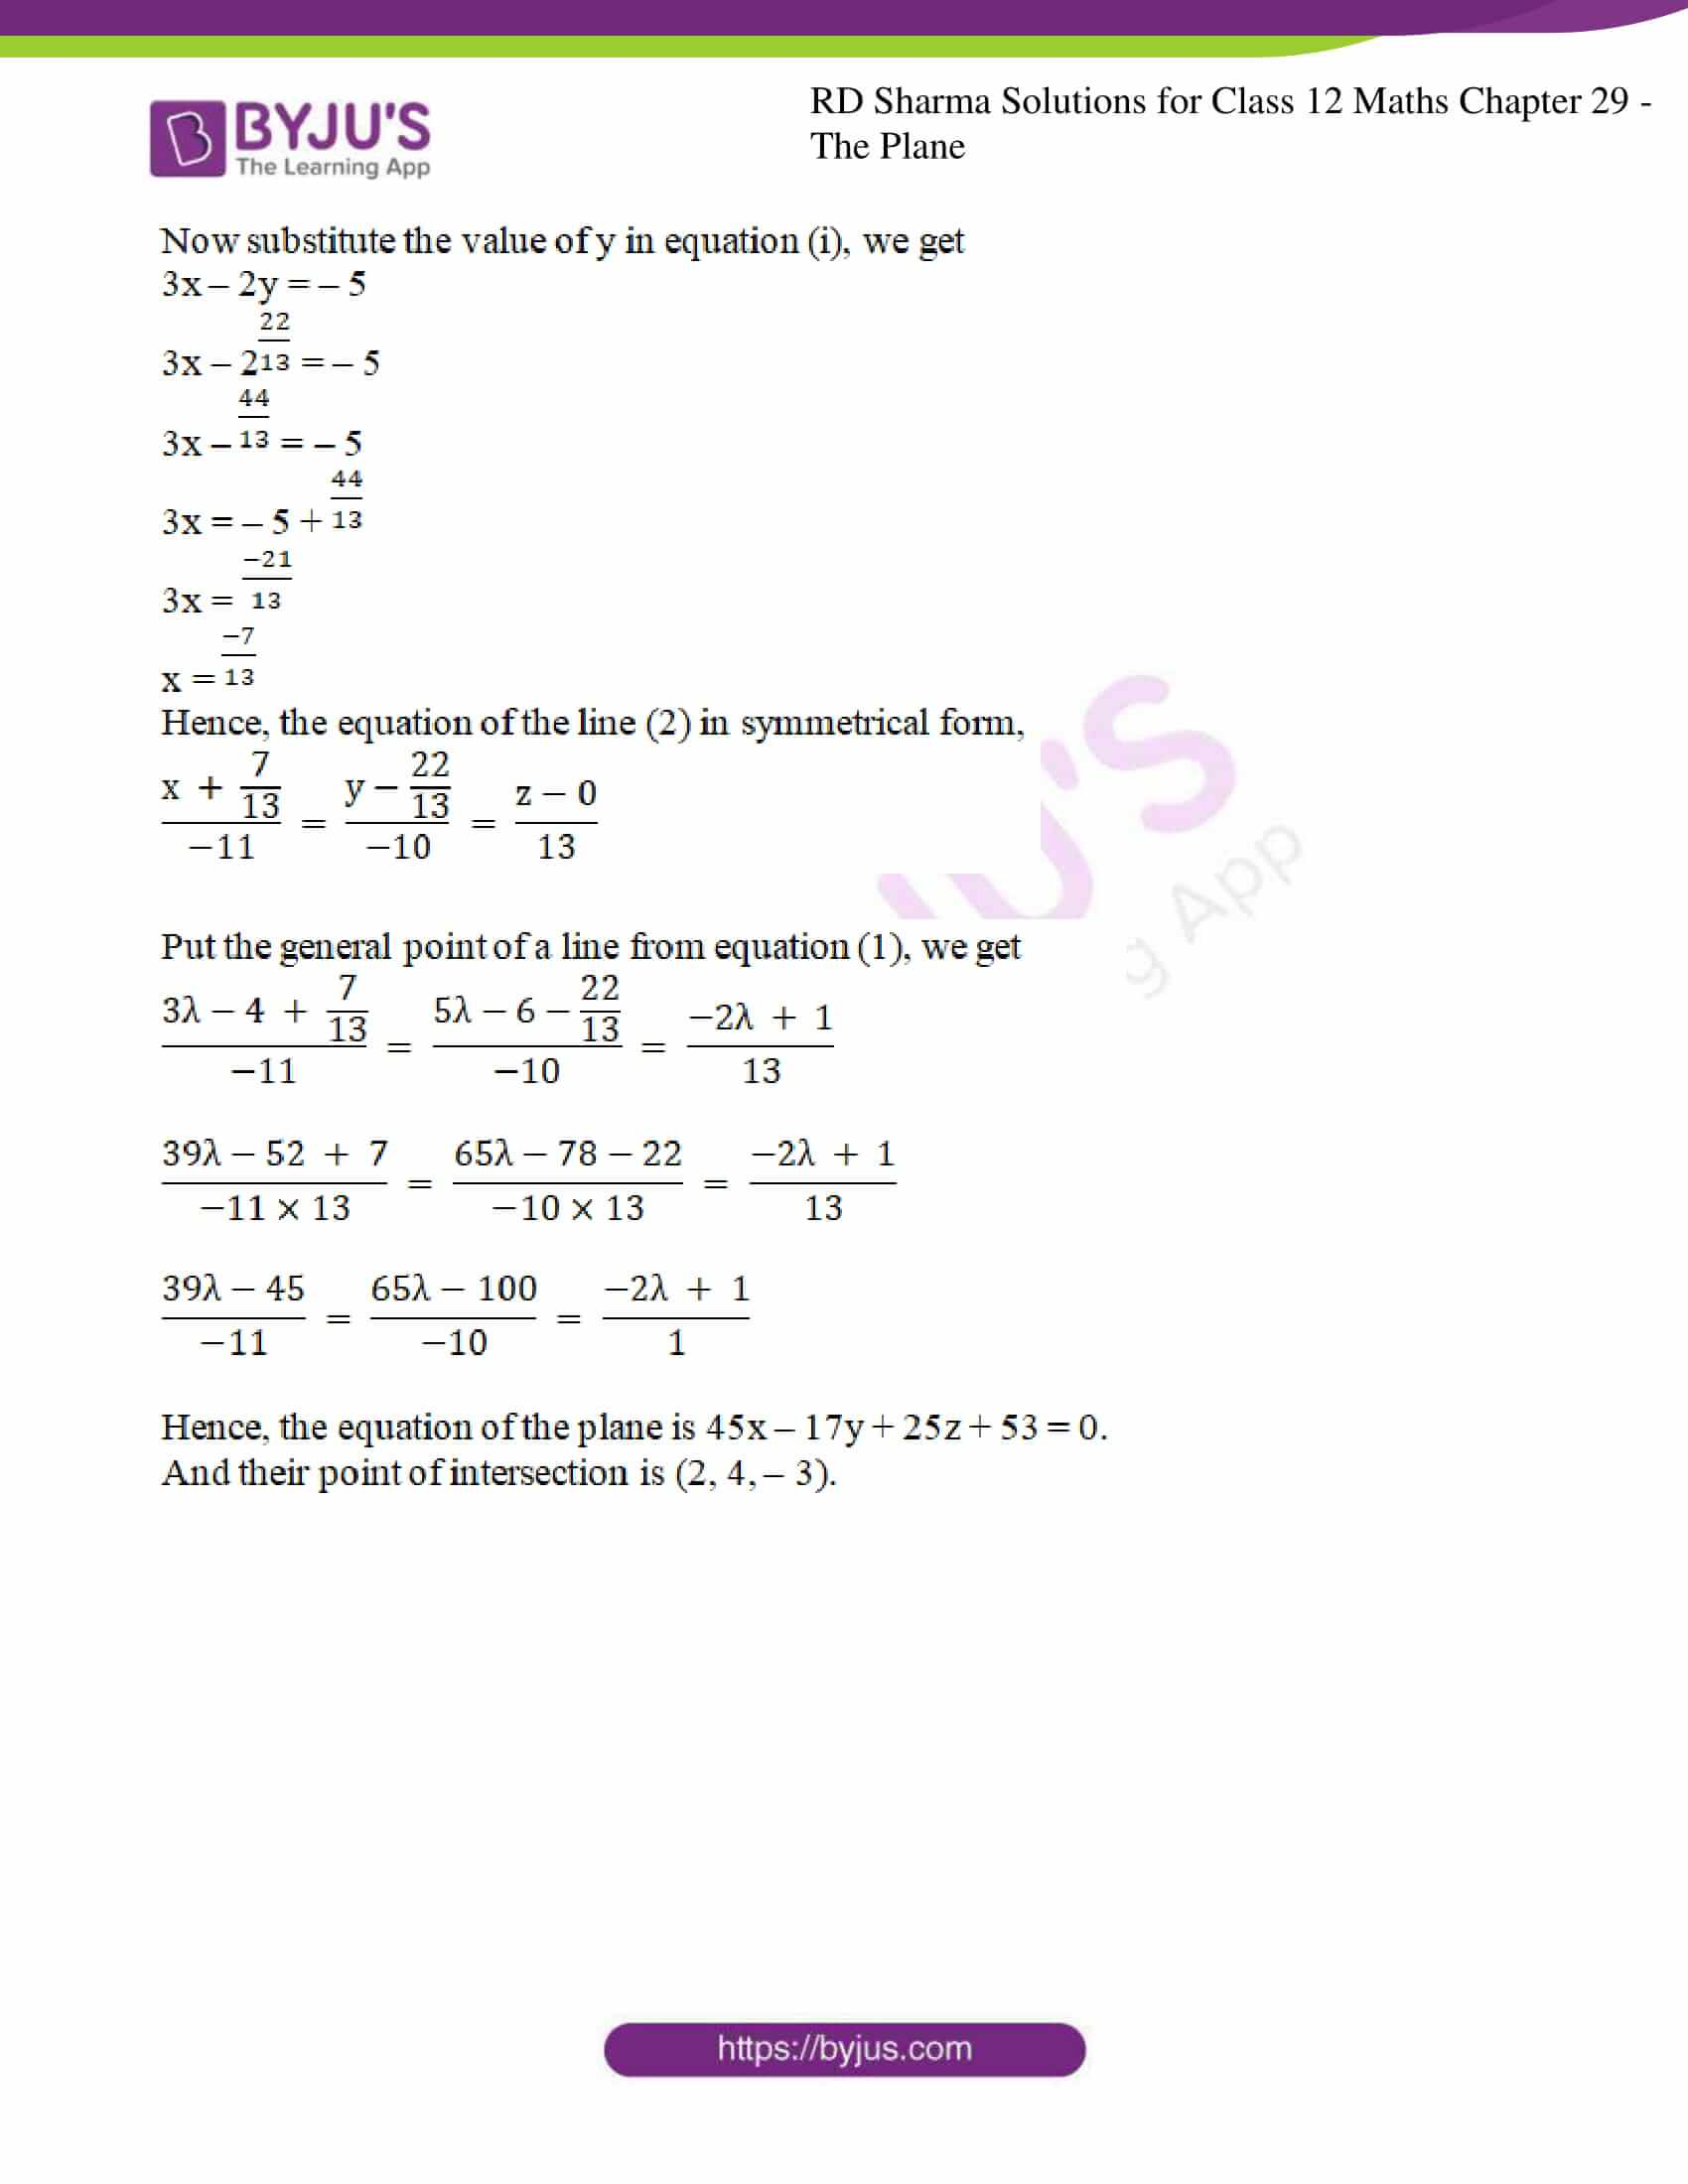 rd sharma solutions for class 12 maths chapter 29 ex 13 7